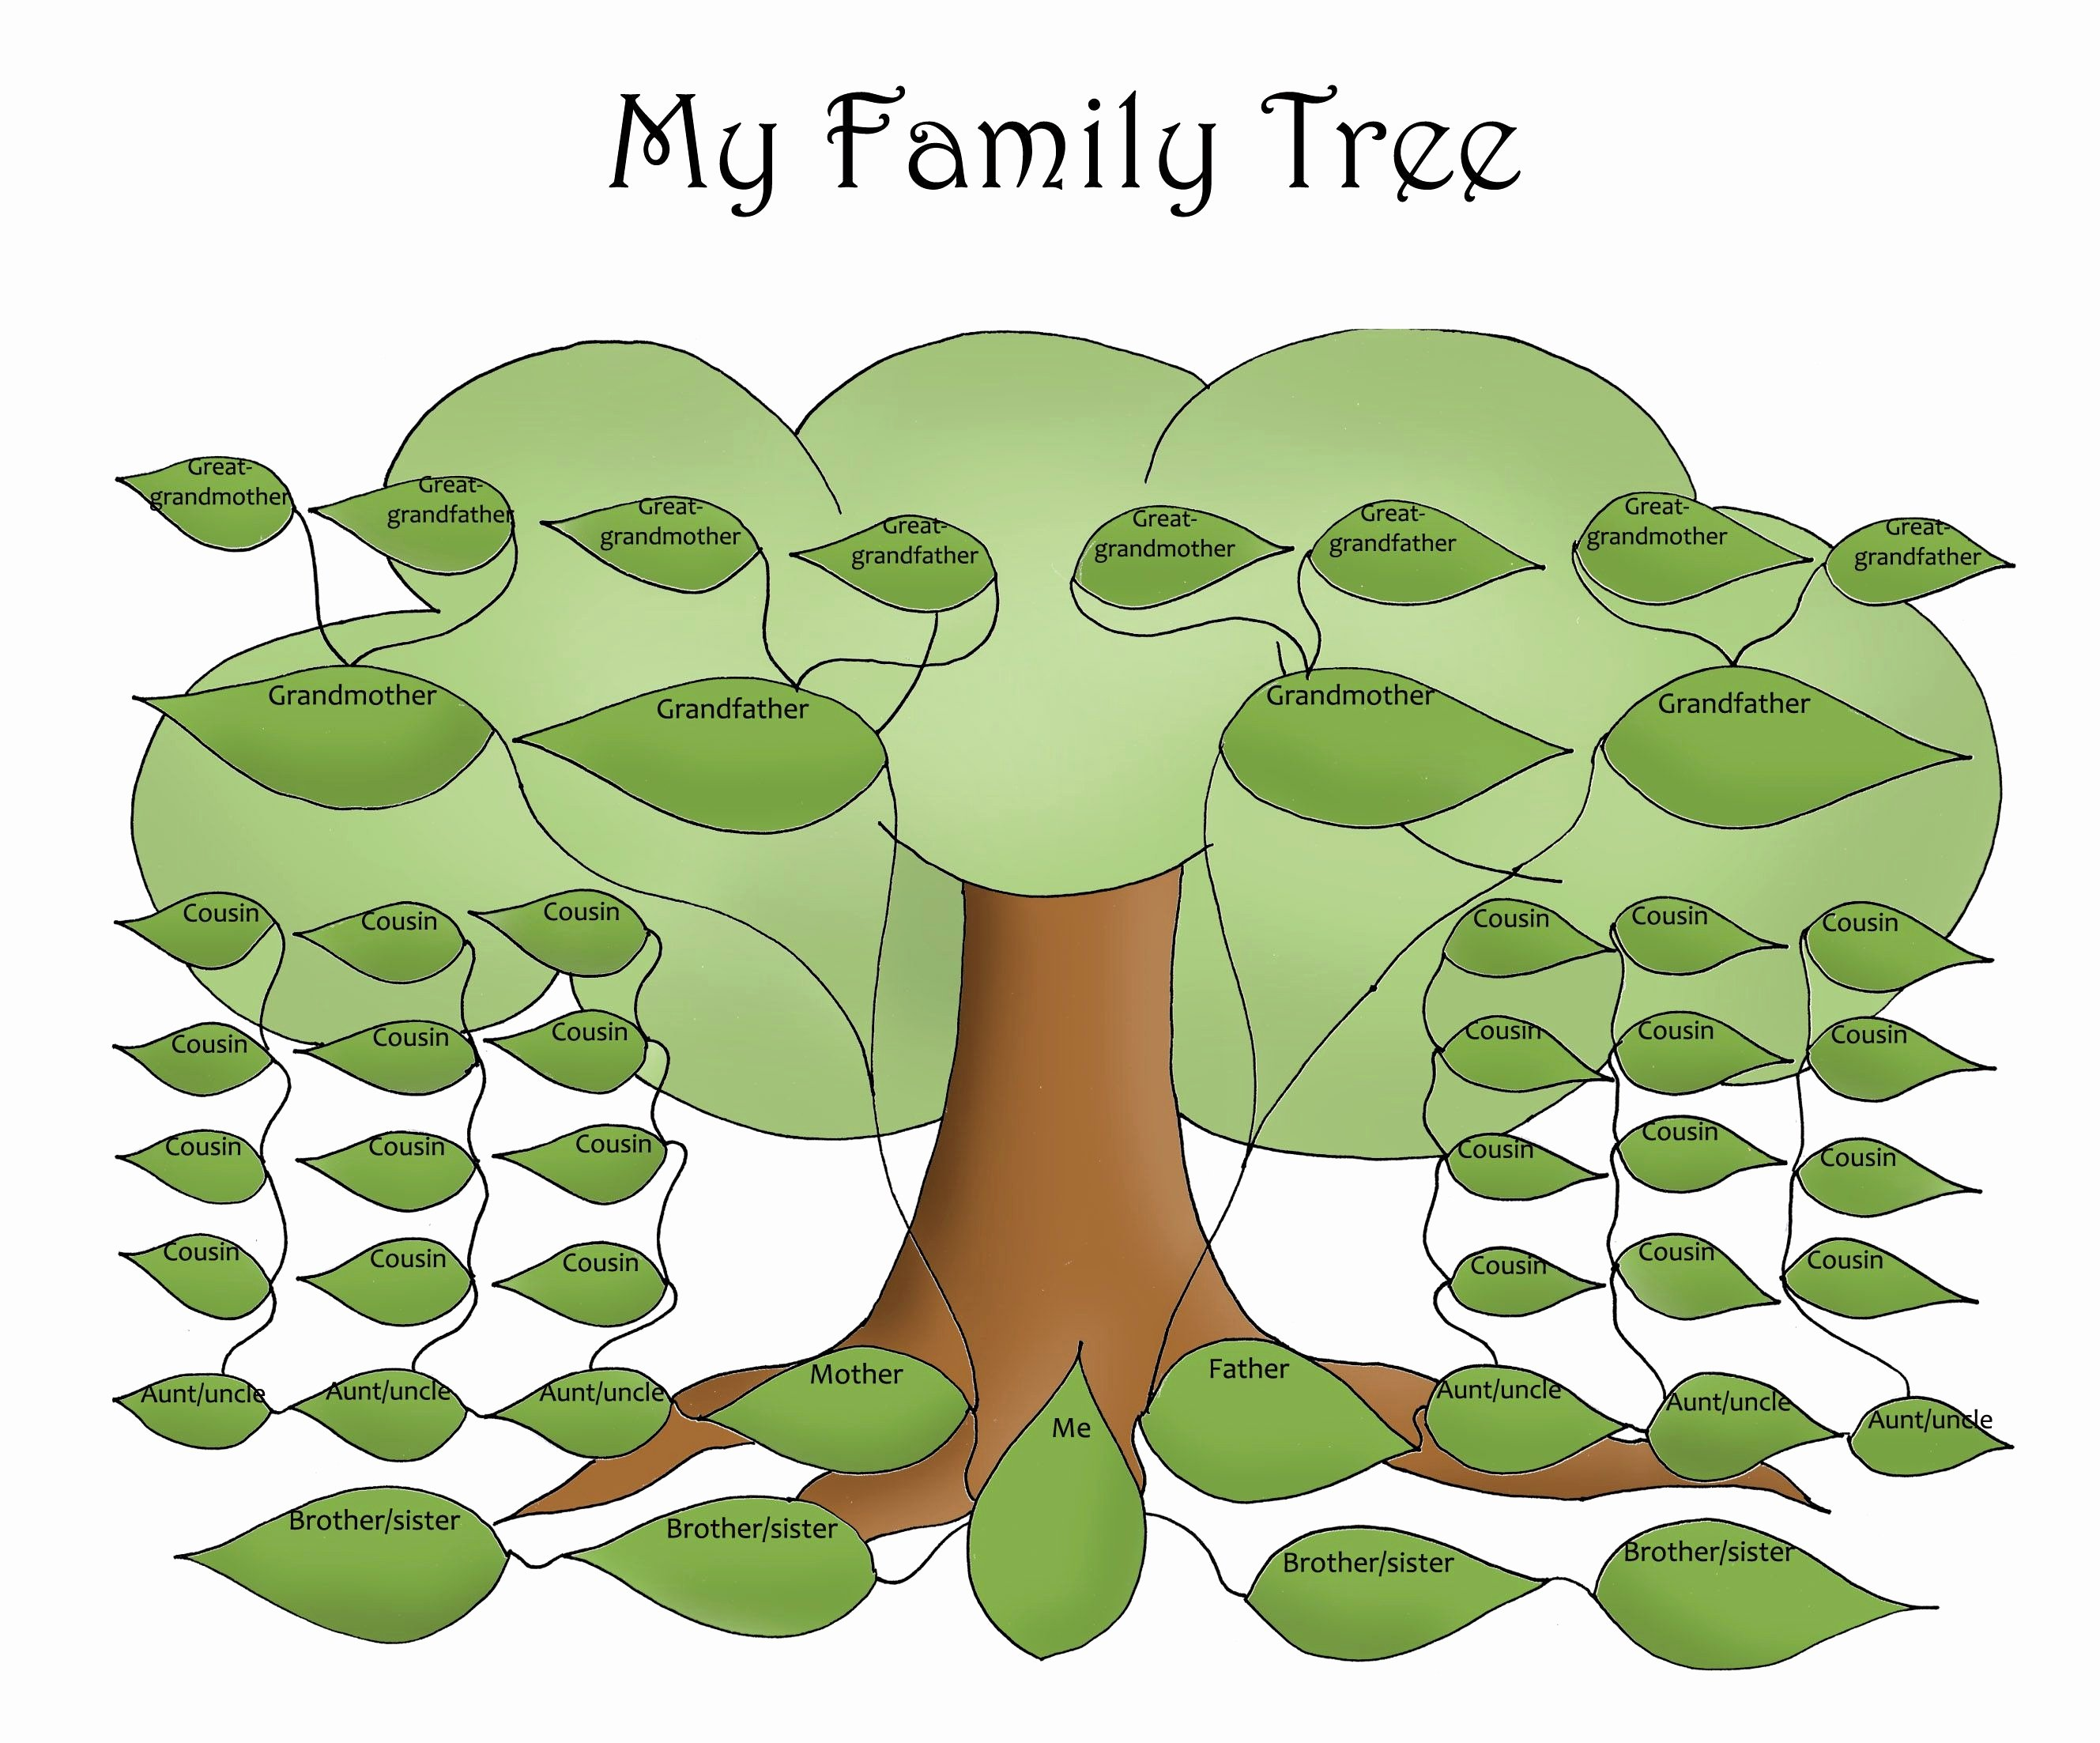 Family Tree Templates Free Online Elegant Free Editable Family Tree Template Daily Roabox